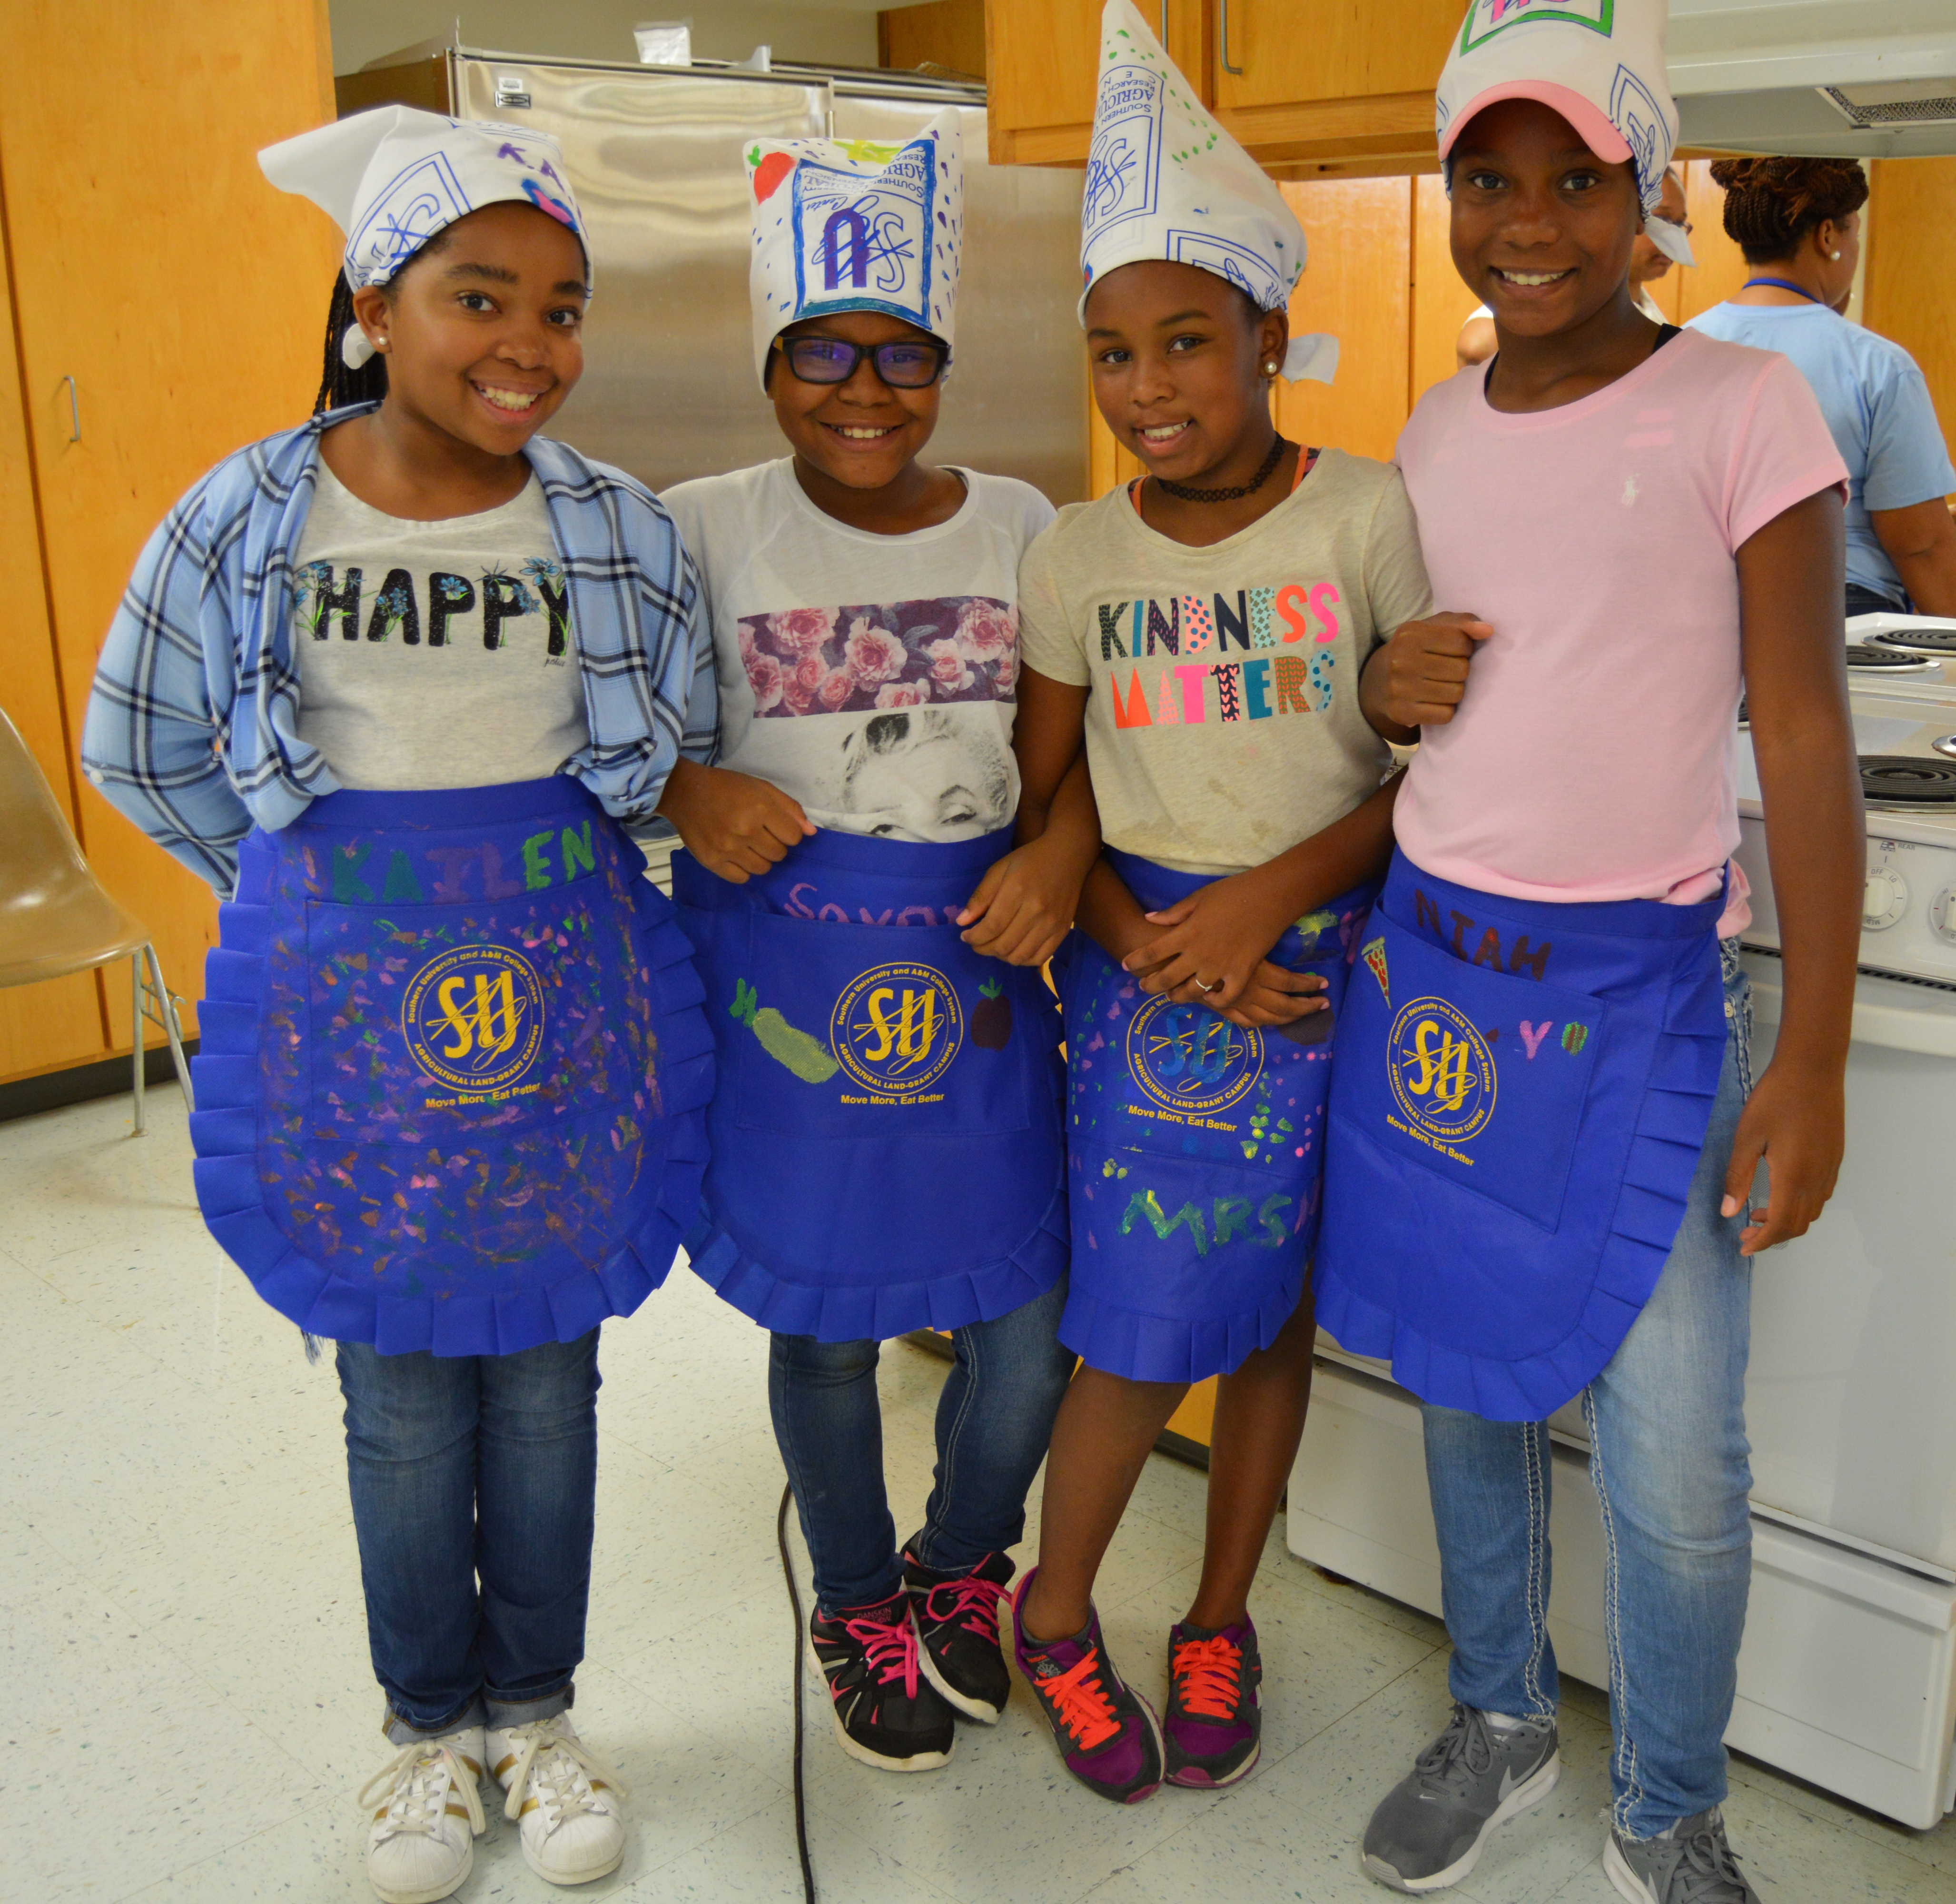 Youth Learn Nutrition, Food Safety, Healthy Lifestyle at CHEF Camps